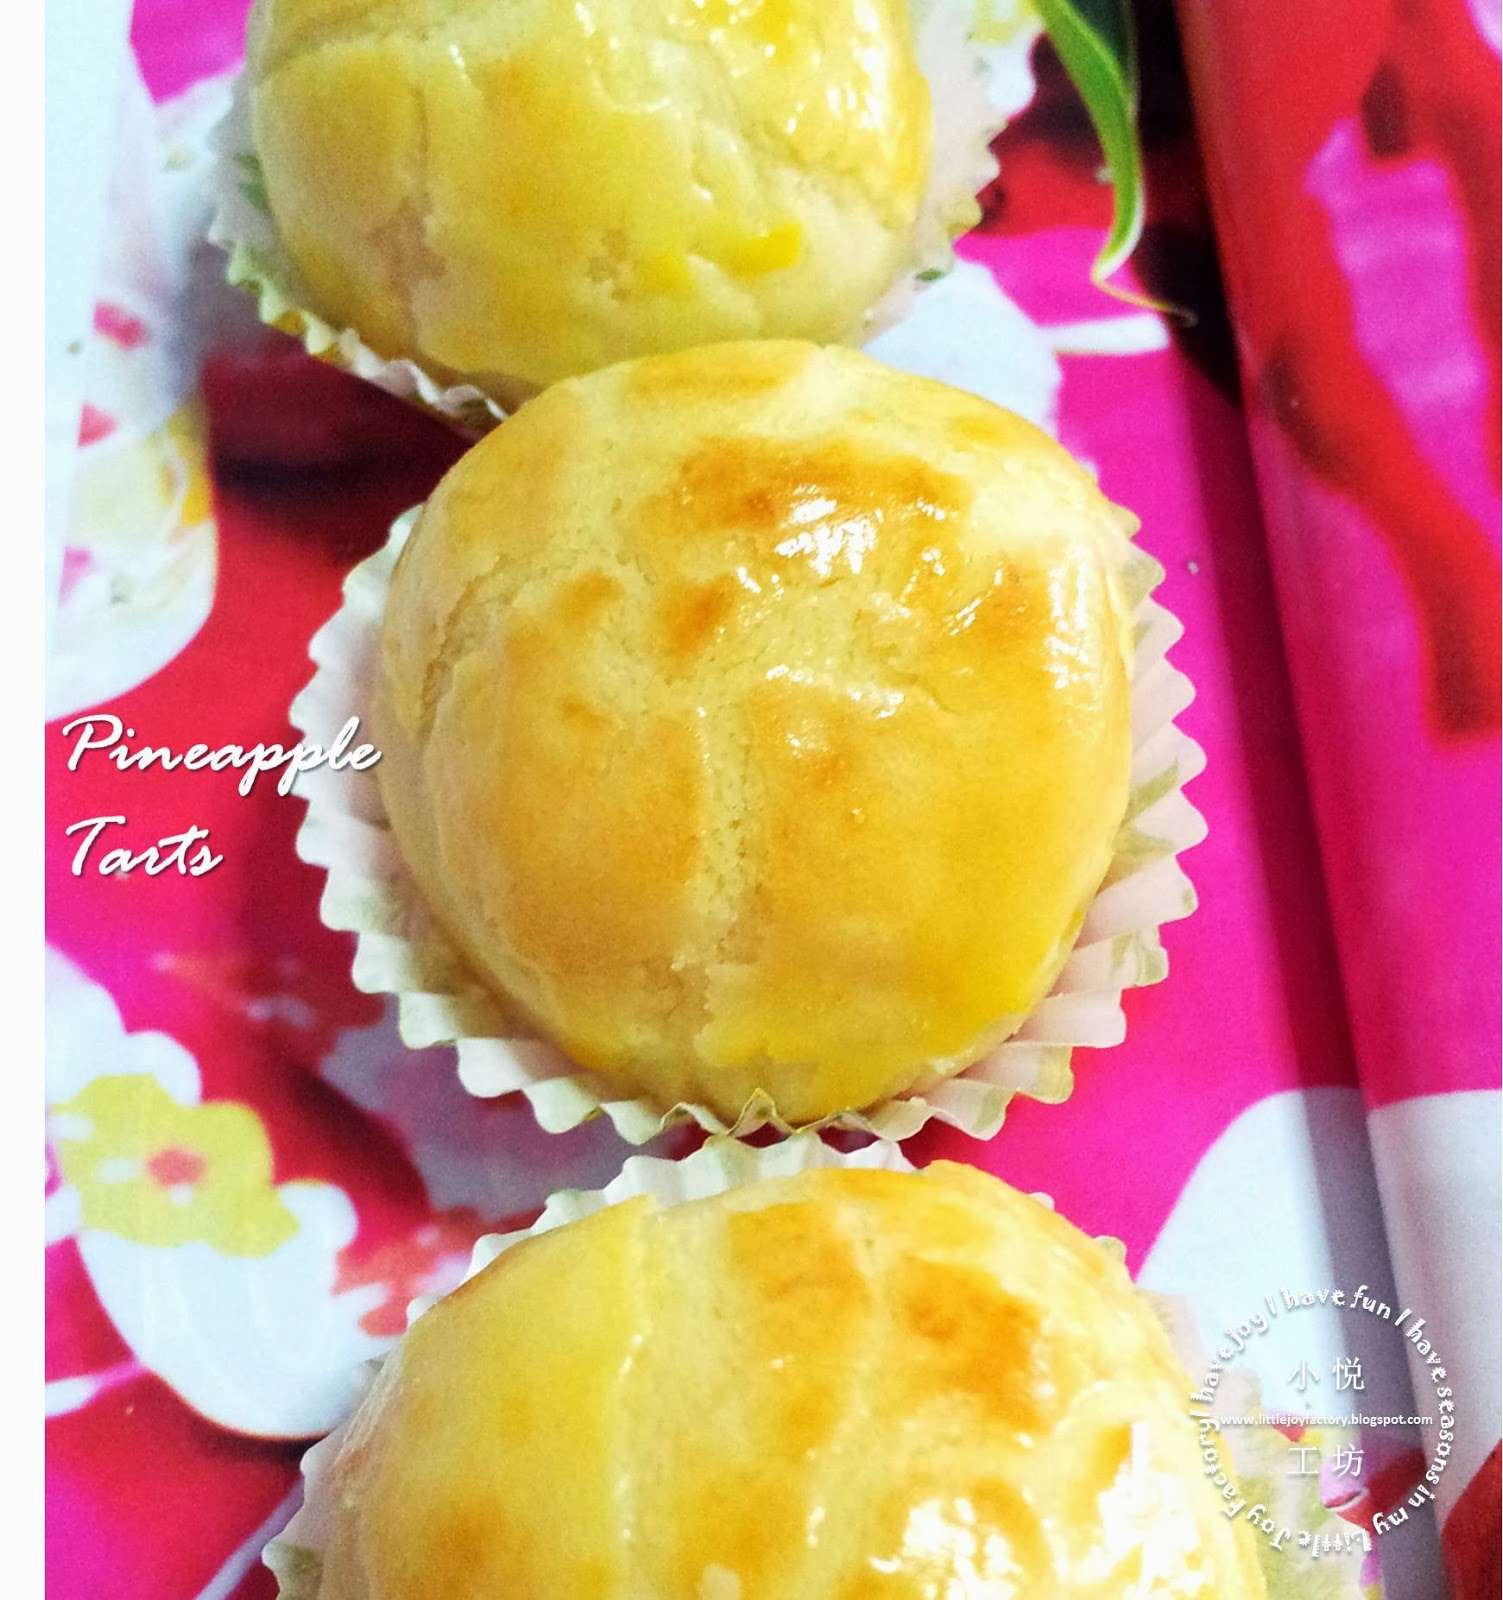 ... Joy Factory: Best Melt-in-the-Mouth Pineapple Tarts (Sonia's Recipe